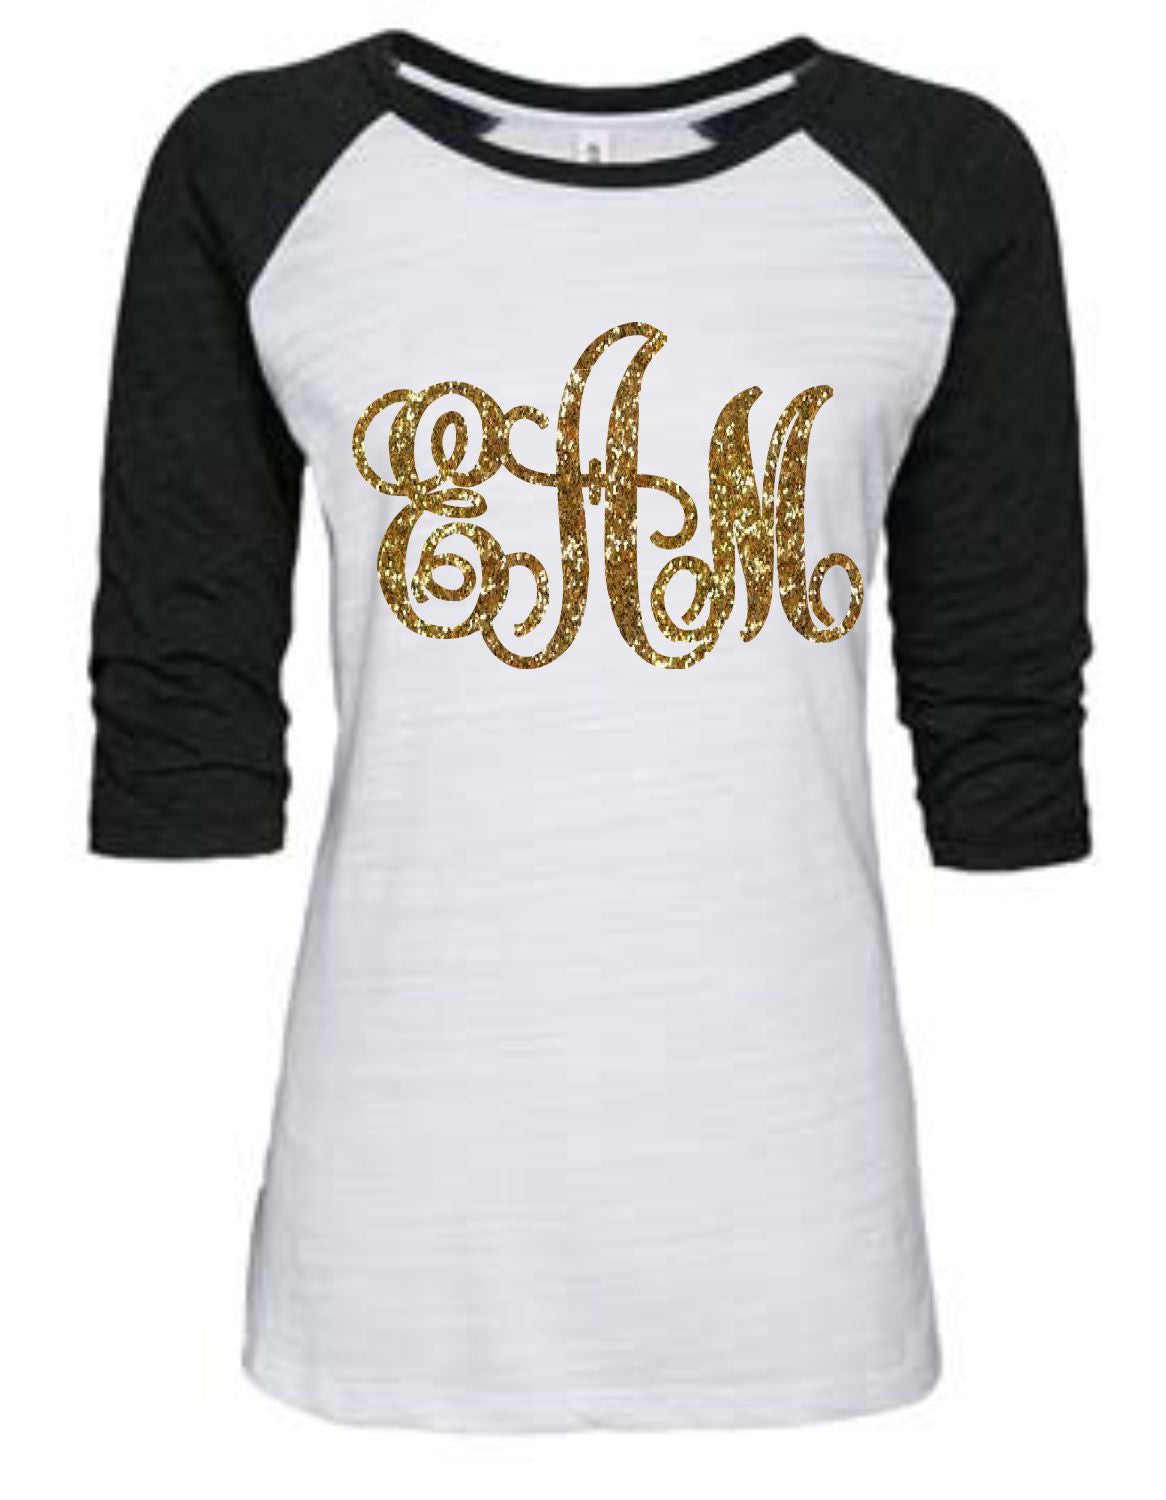 Ladies Glitter Monogram Vintage Raglan Shirt